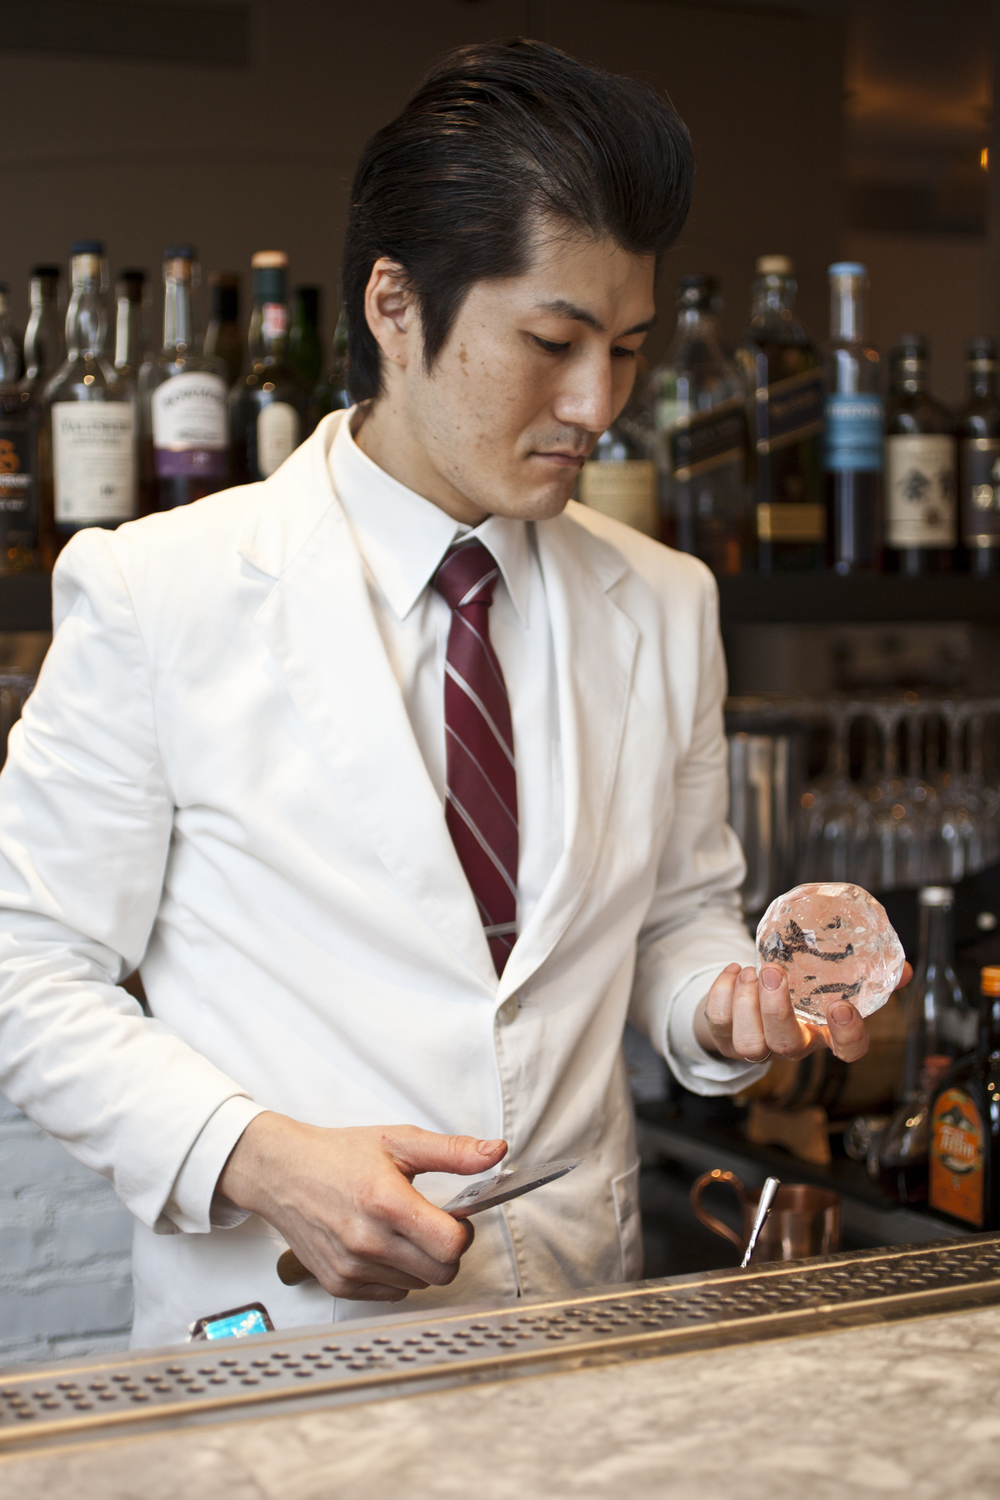 Bartender Shinya Yamao carving ice for cocktails at Piora